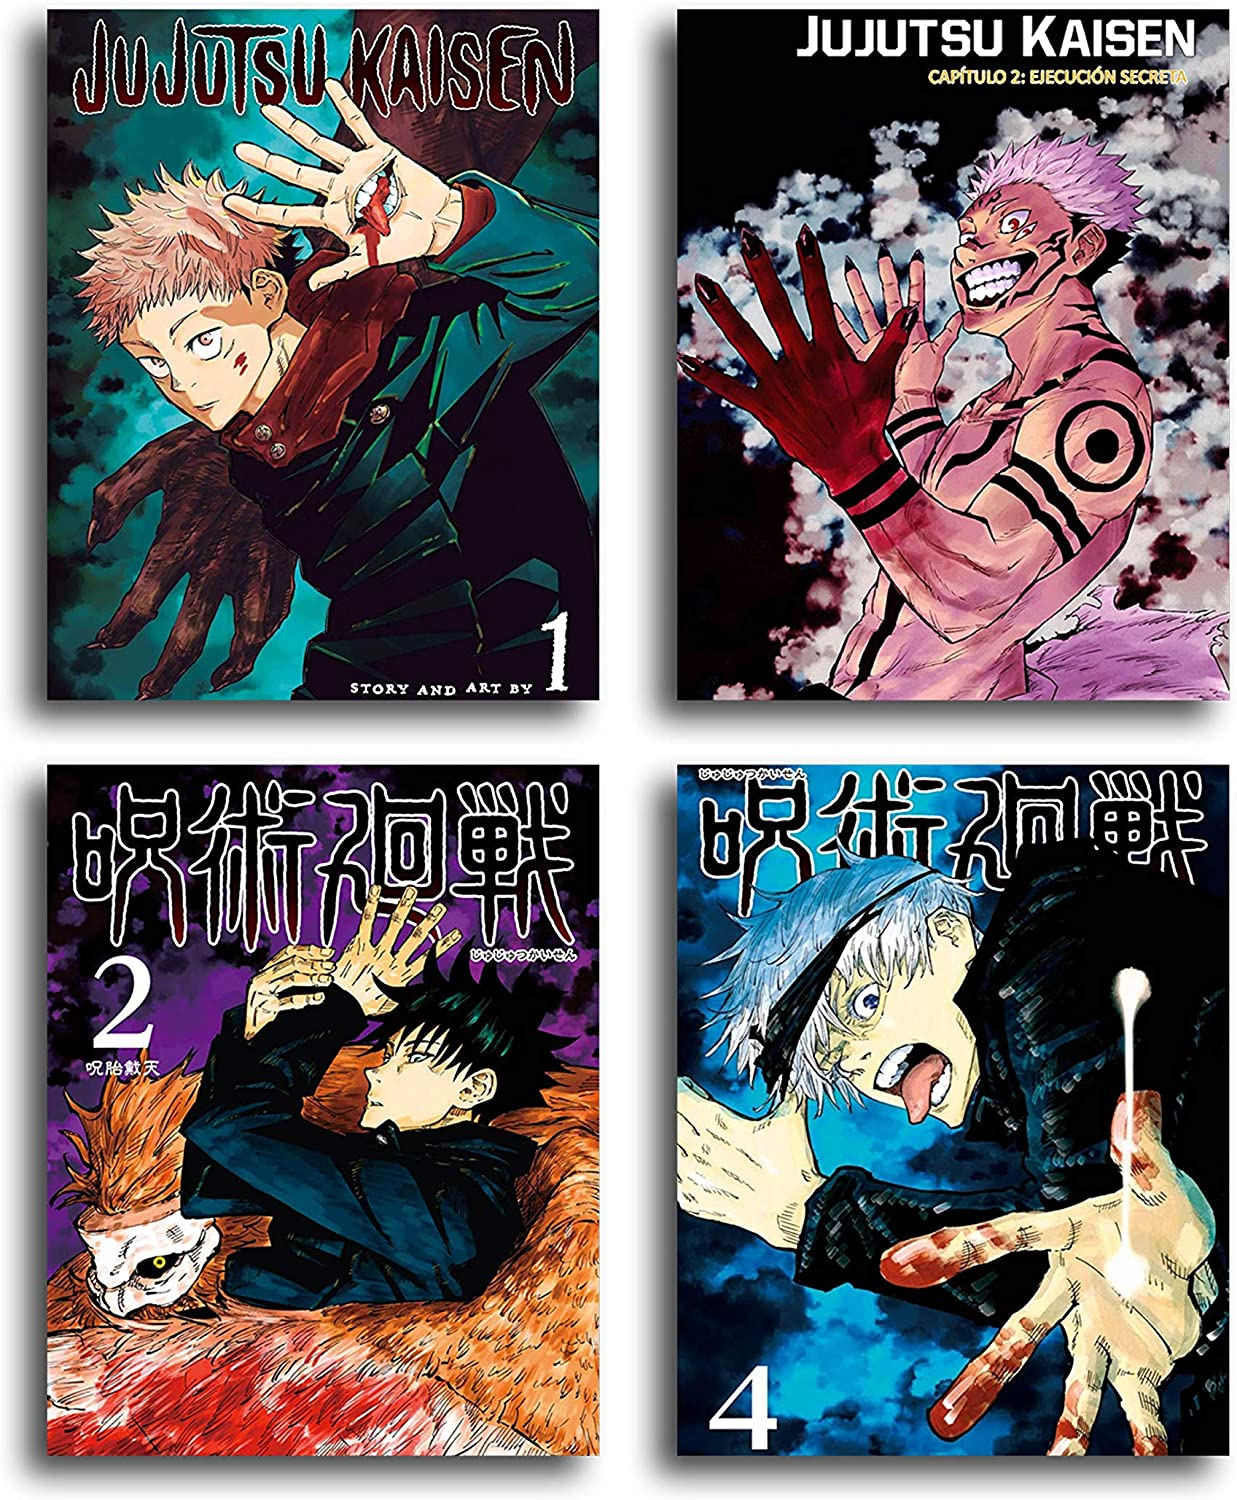 WUTONG Anime Poster Wall Art Set - Anime Jujutsu Kaisen 8X10 Inches Canvas Art Print Poster,HD Printed Posters for Room for Bathroom Decor Teen Boy Room Decor Wall Decor Home Decor,Unframed